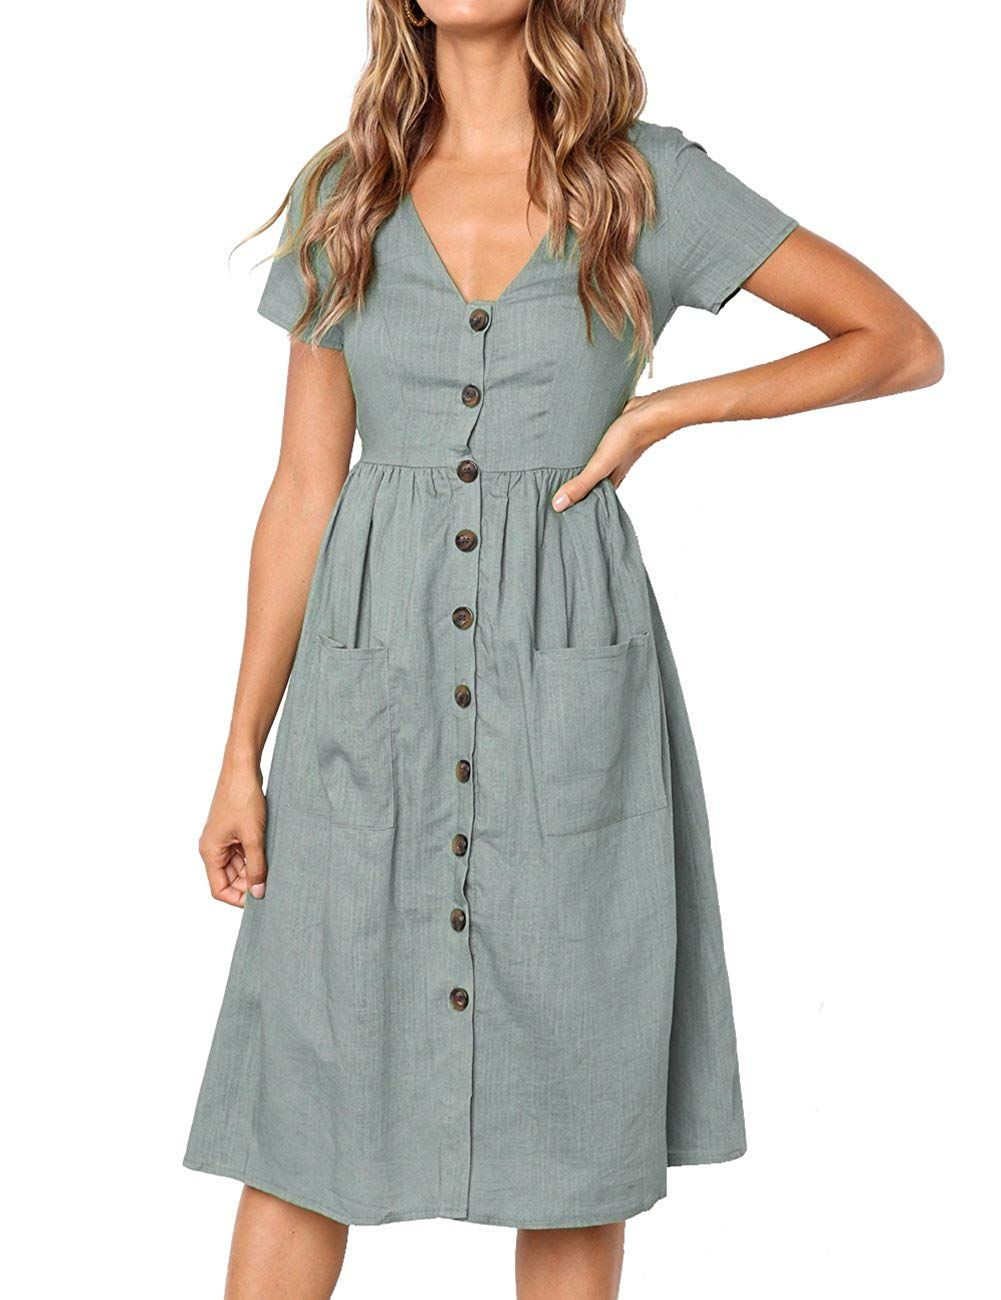 Merokeety Women S Summer Short Sleeve V Neck Button Down Swing Midi Dress With Pockets At Amazon Women Midi Short Sleeve Dress Short Sleeve Dresses Mid Dresses [ 1300 x 1001 Pixel ]